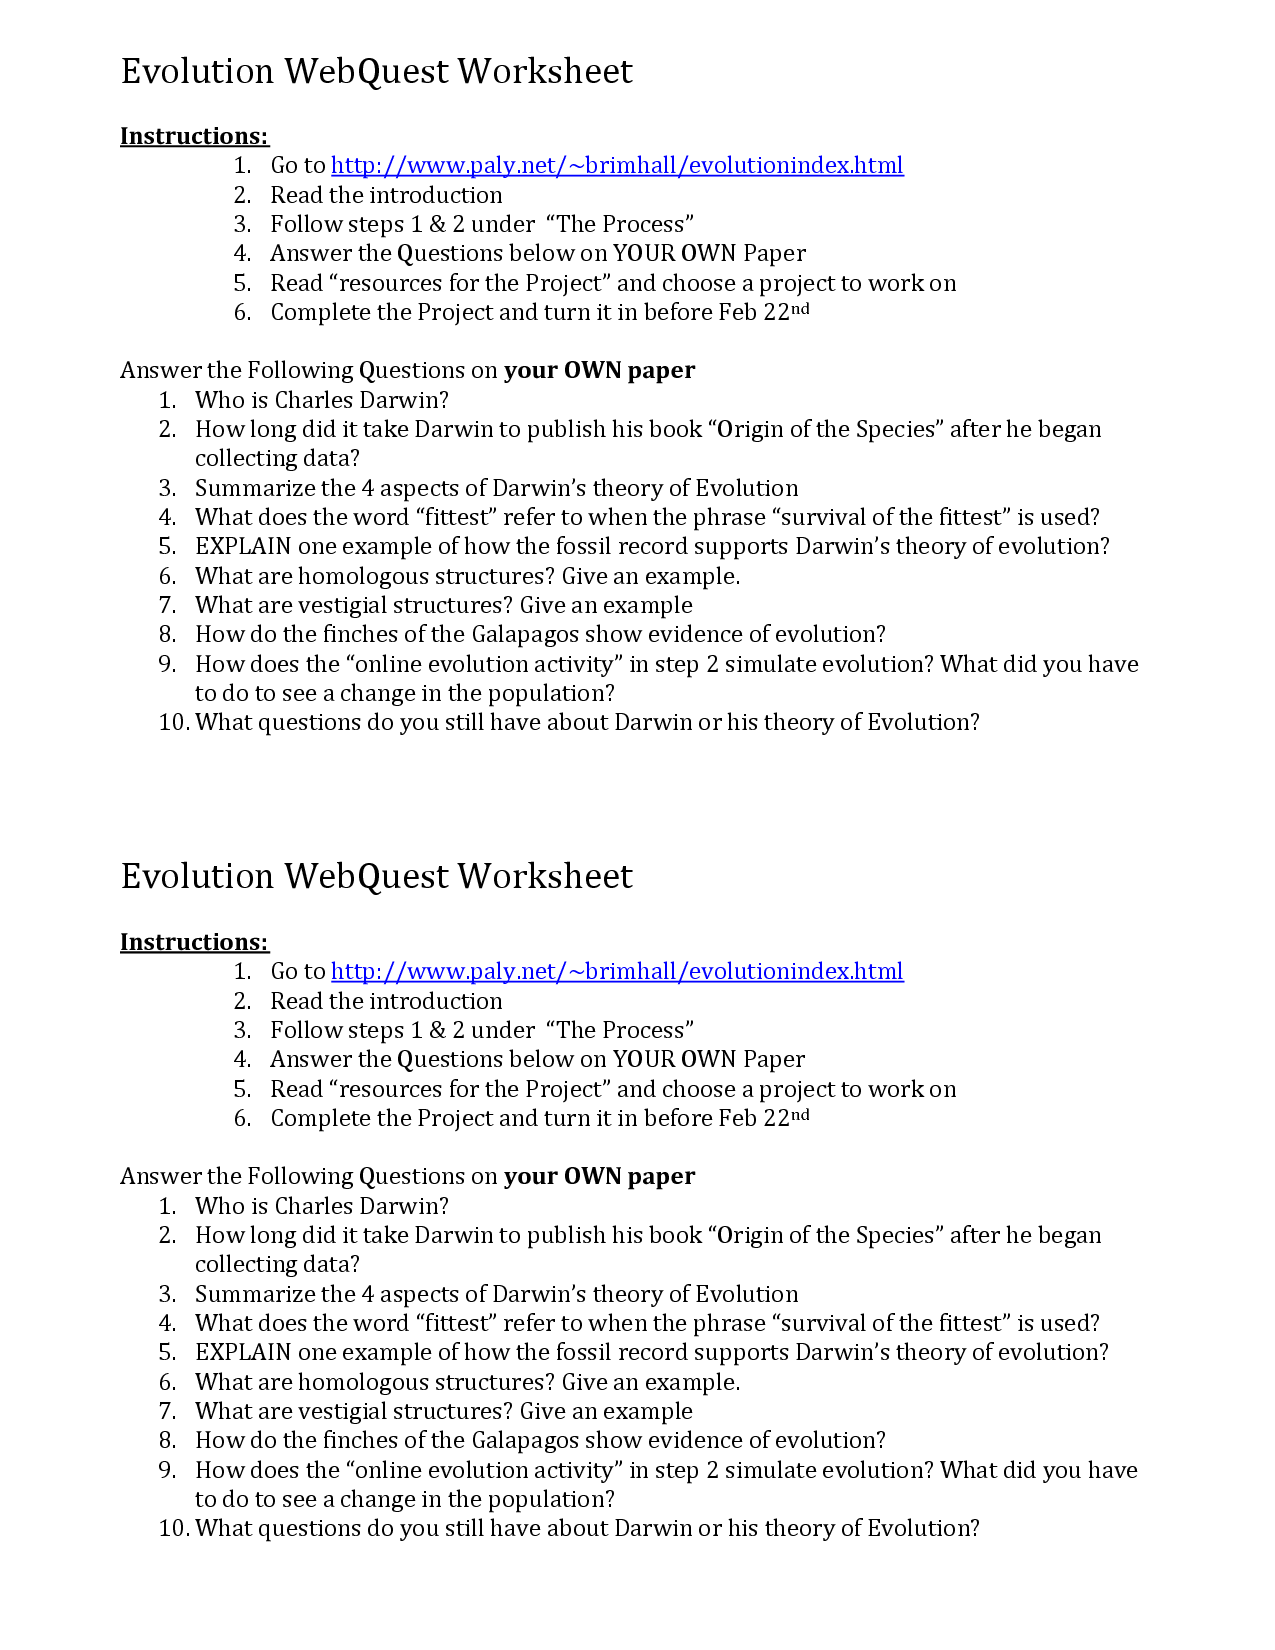 16 Best Images of Evidence Of Evolution Worksheet Answers  Evidence of Evolution Worksheet